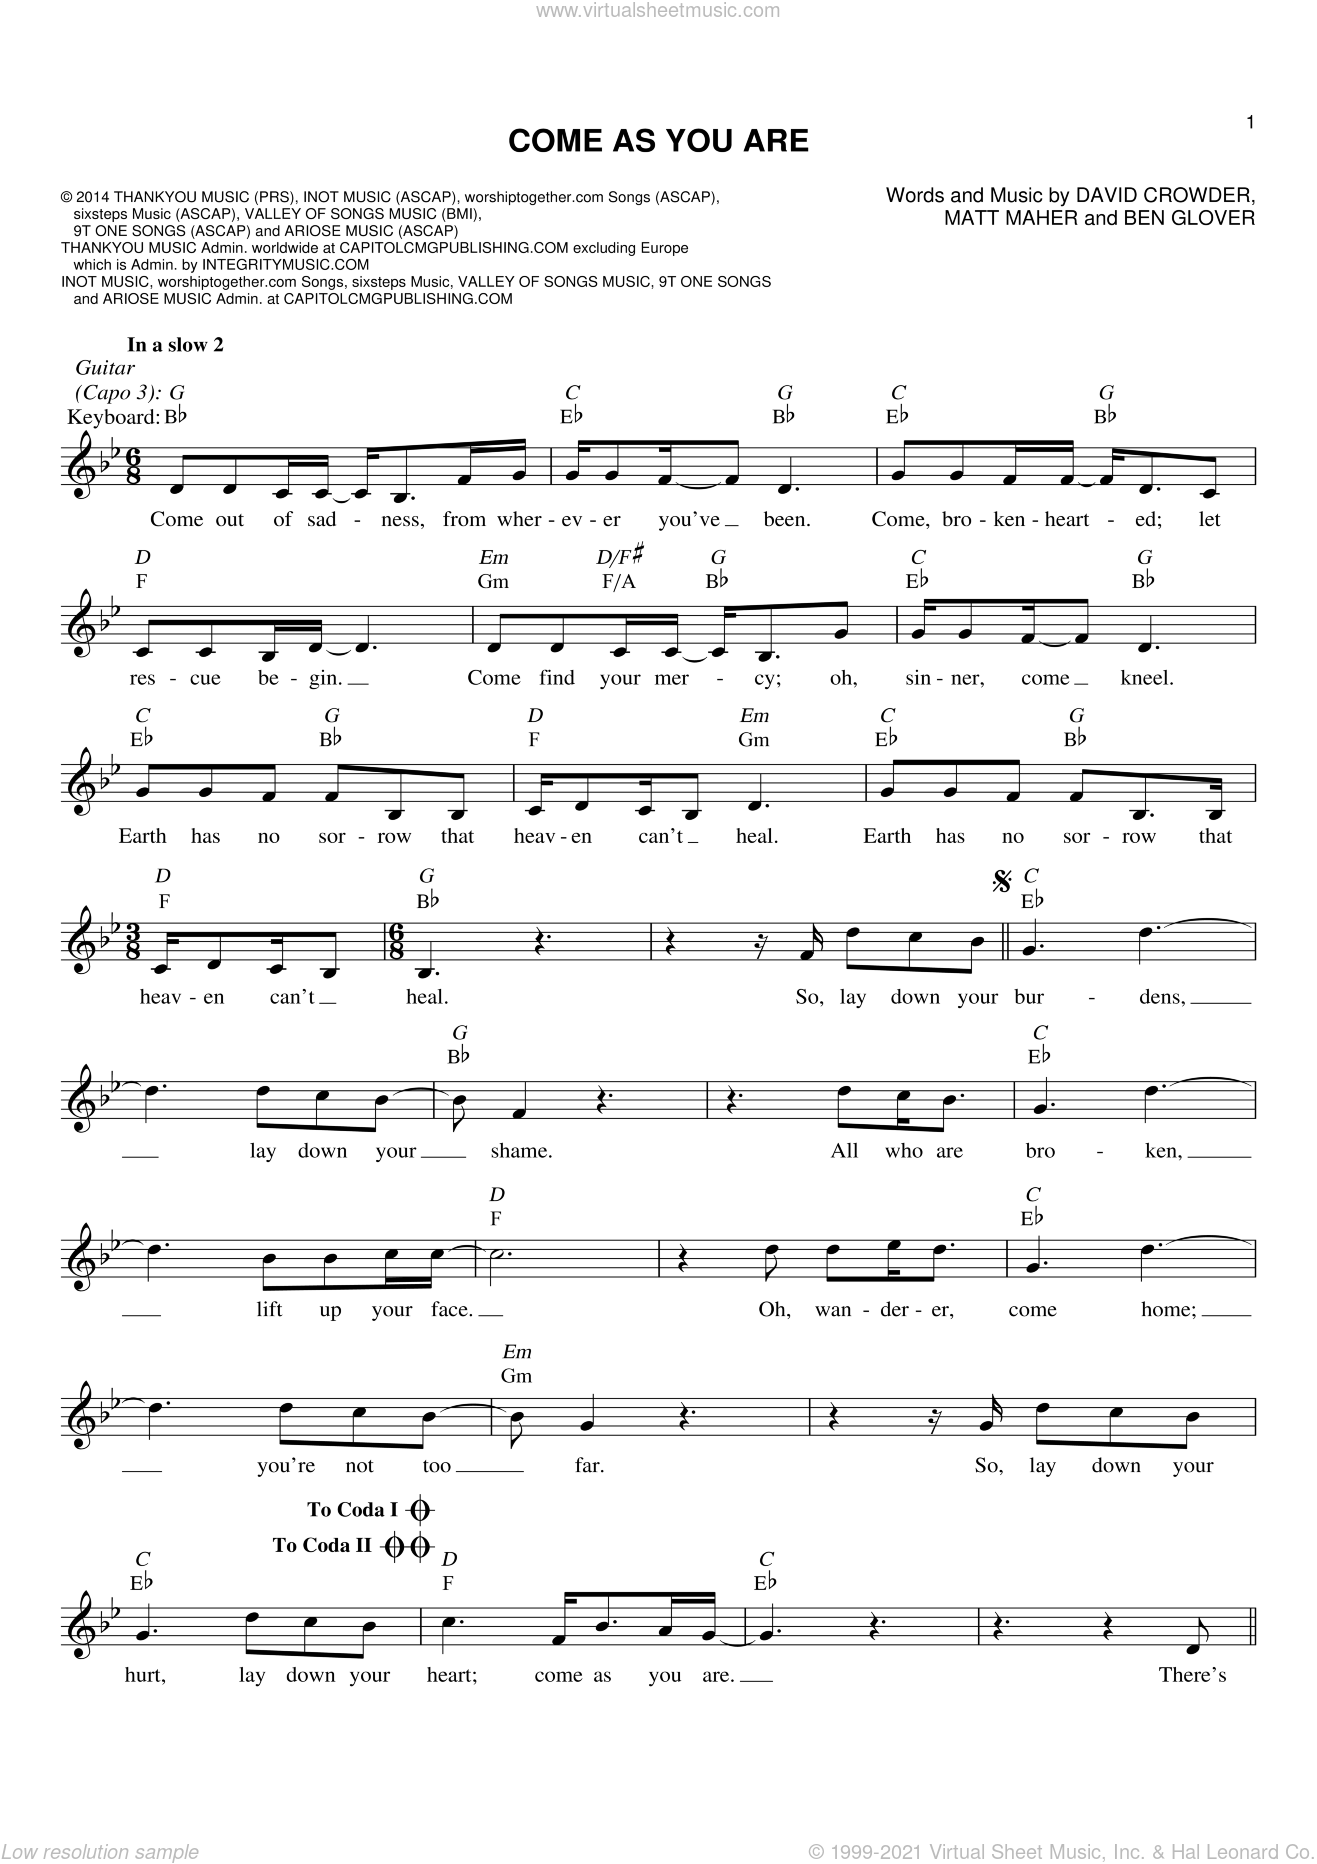 Come As You Are sheet music for voice and other instruments (fake book) by Matt Maher, Crowder, Ben Glover and David Crowder. Score Image Preview.